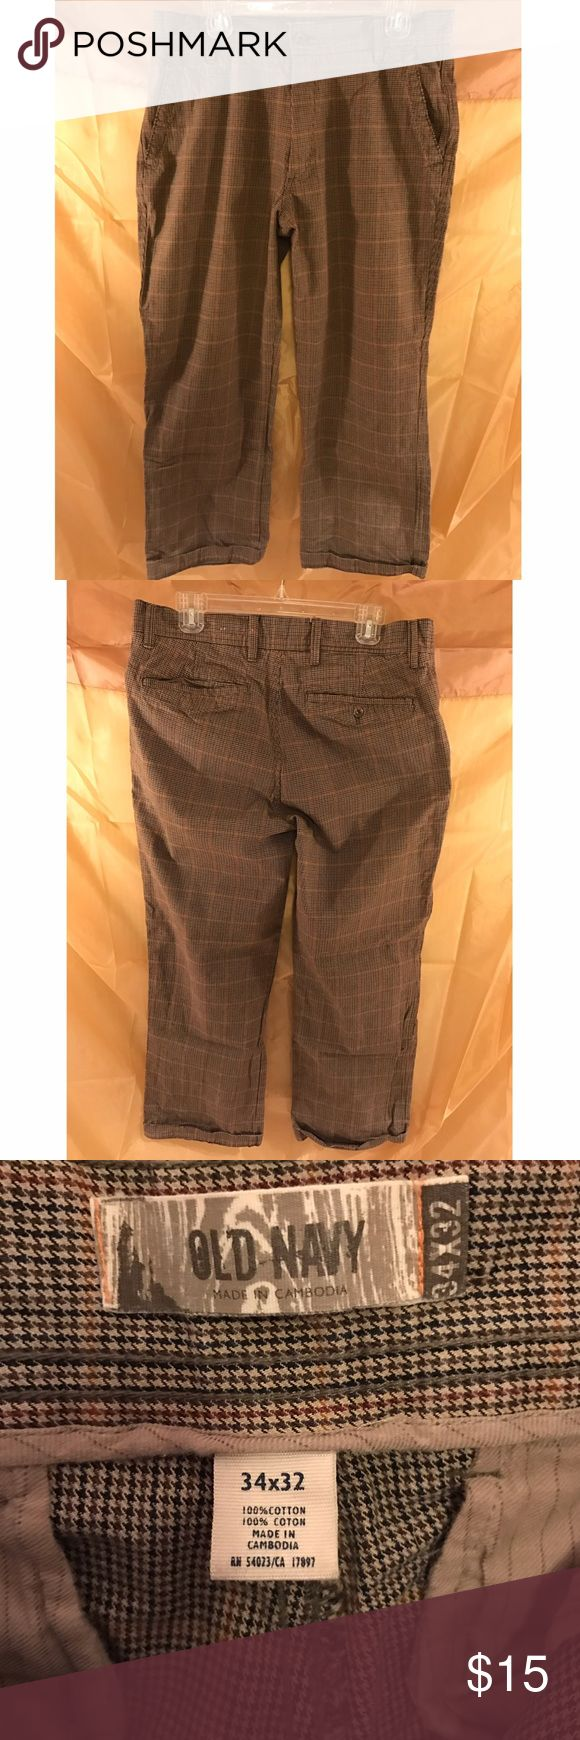 Men's Old Navy Slacks Men's Old Navy cotton chino pants for sale. Great pants with houndstooth print. Can be casual or dressy casual. Old Navy Pants Chinos & Khakis